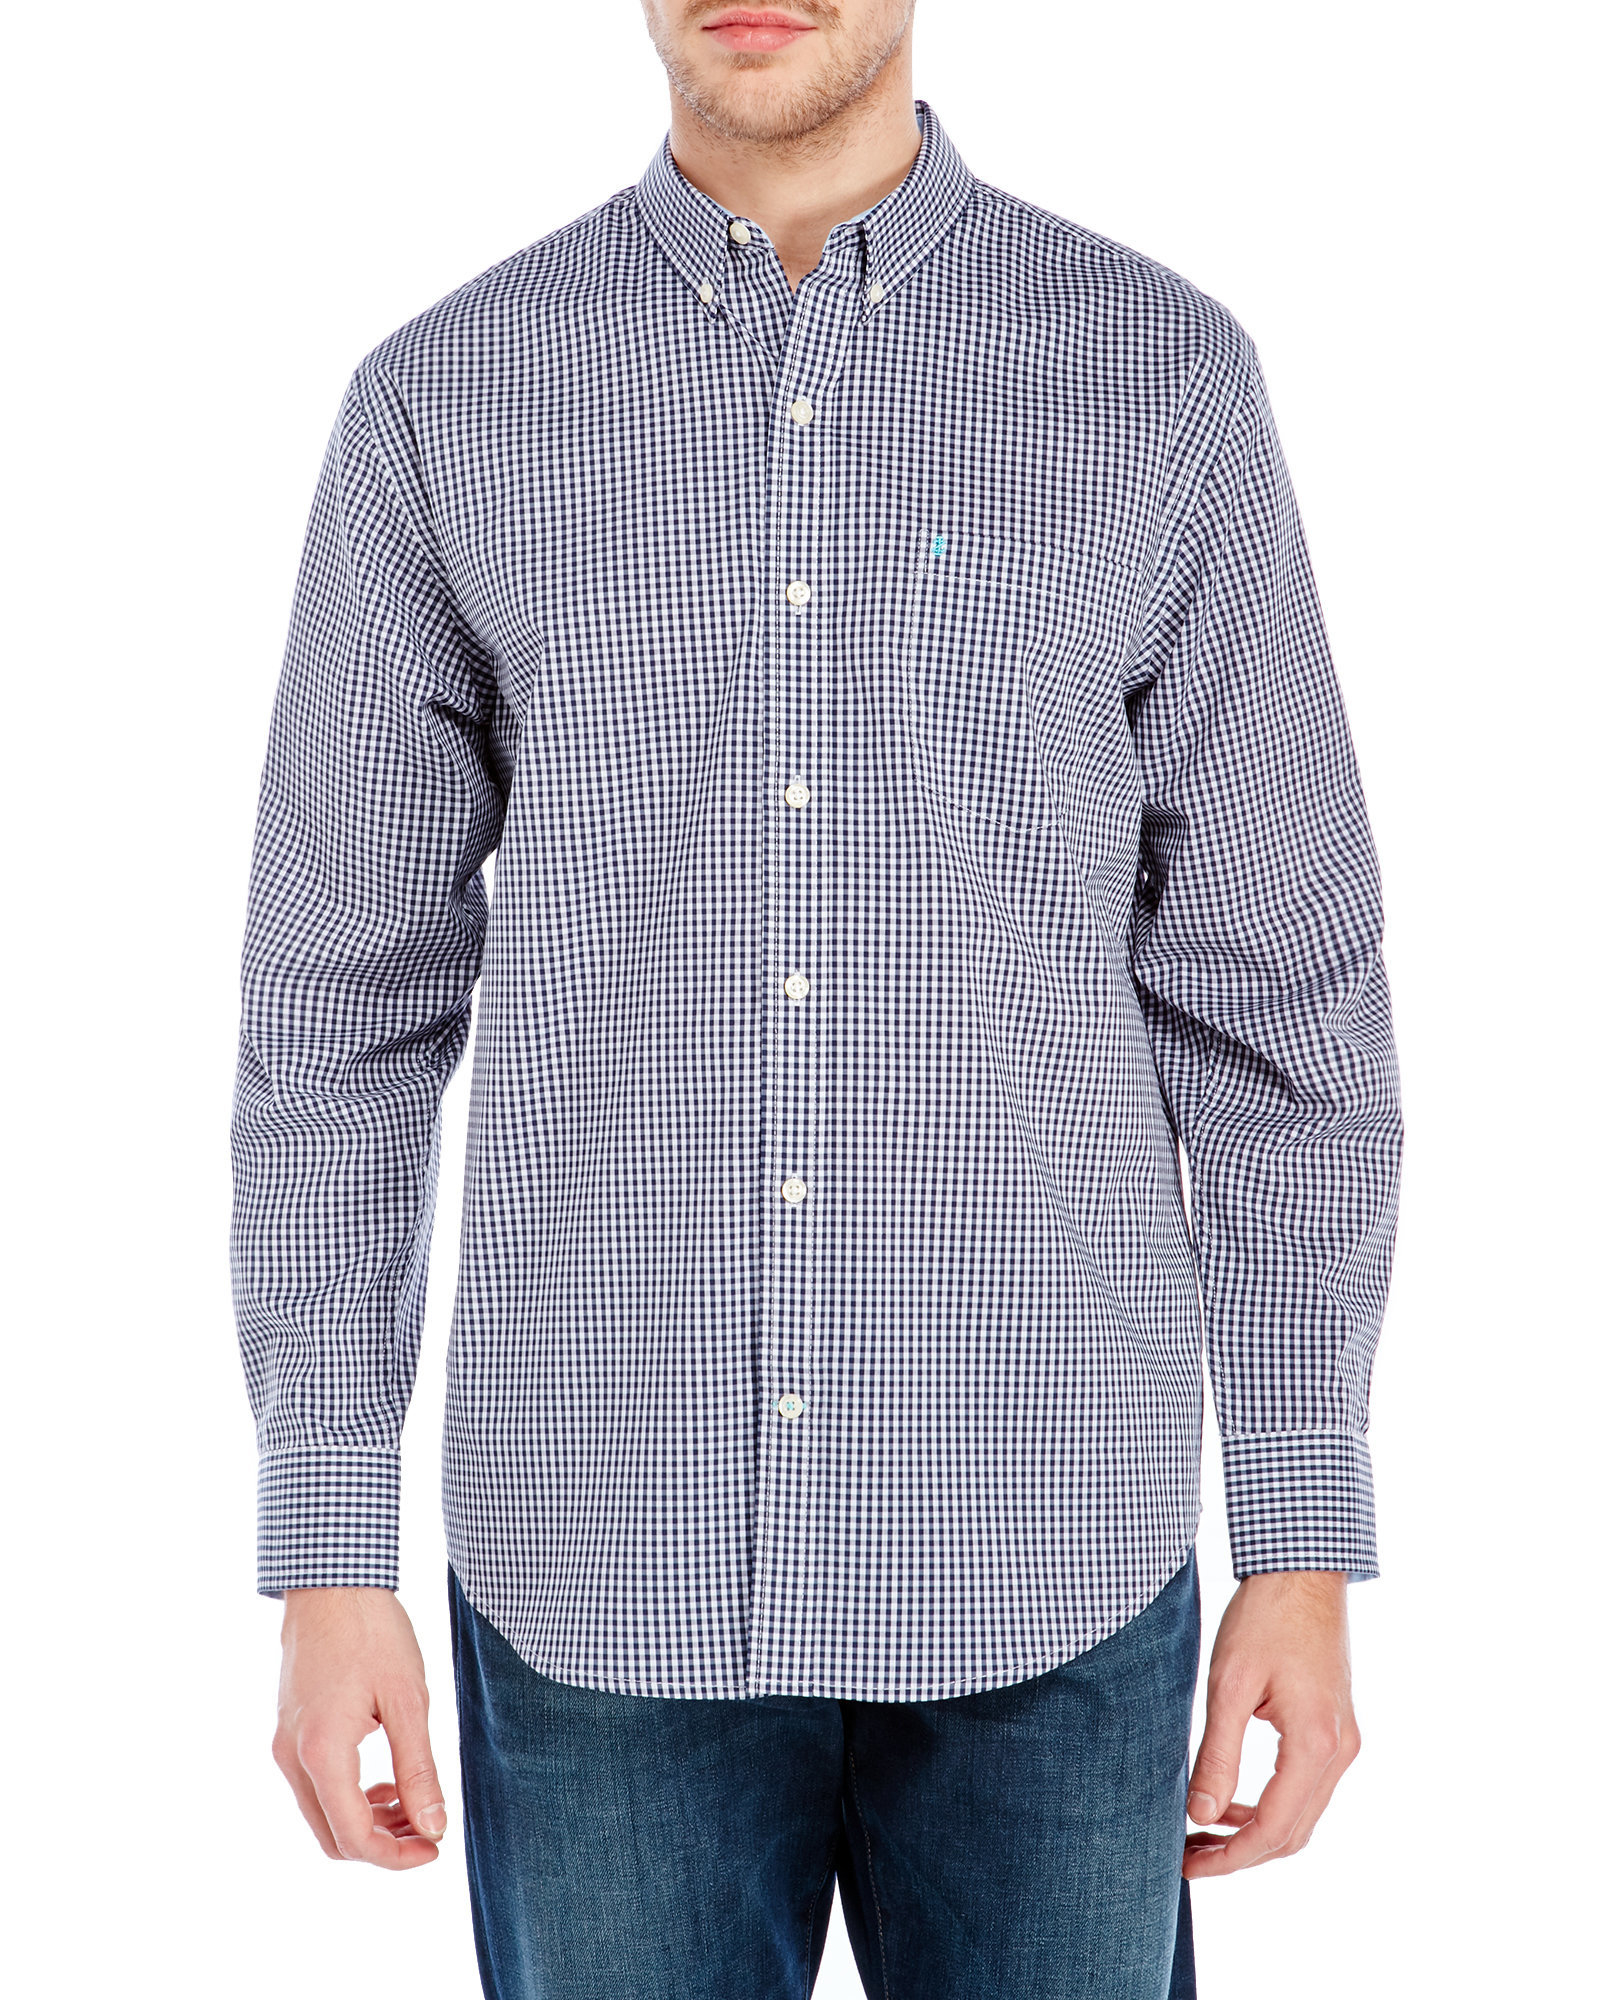 Izod gingham non iron button down shirt in blue for men lyst for Izod button down shirts